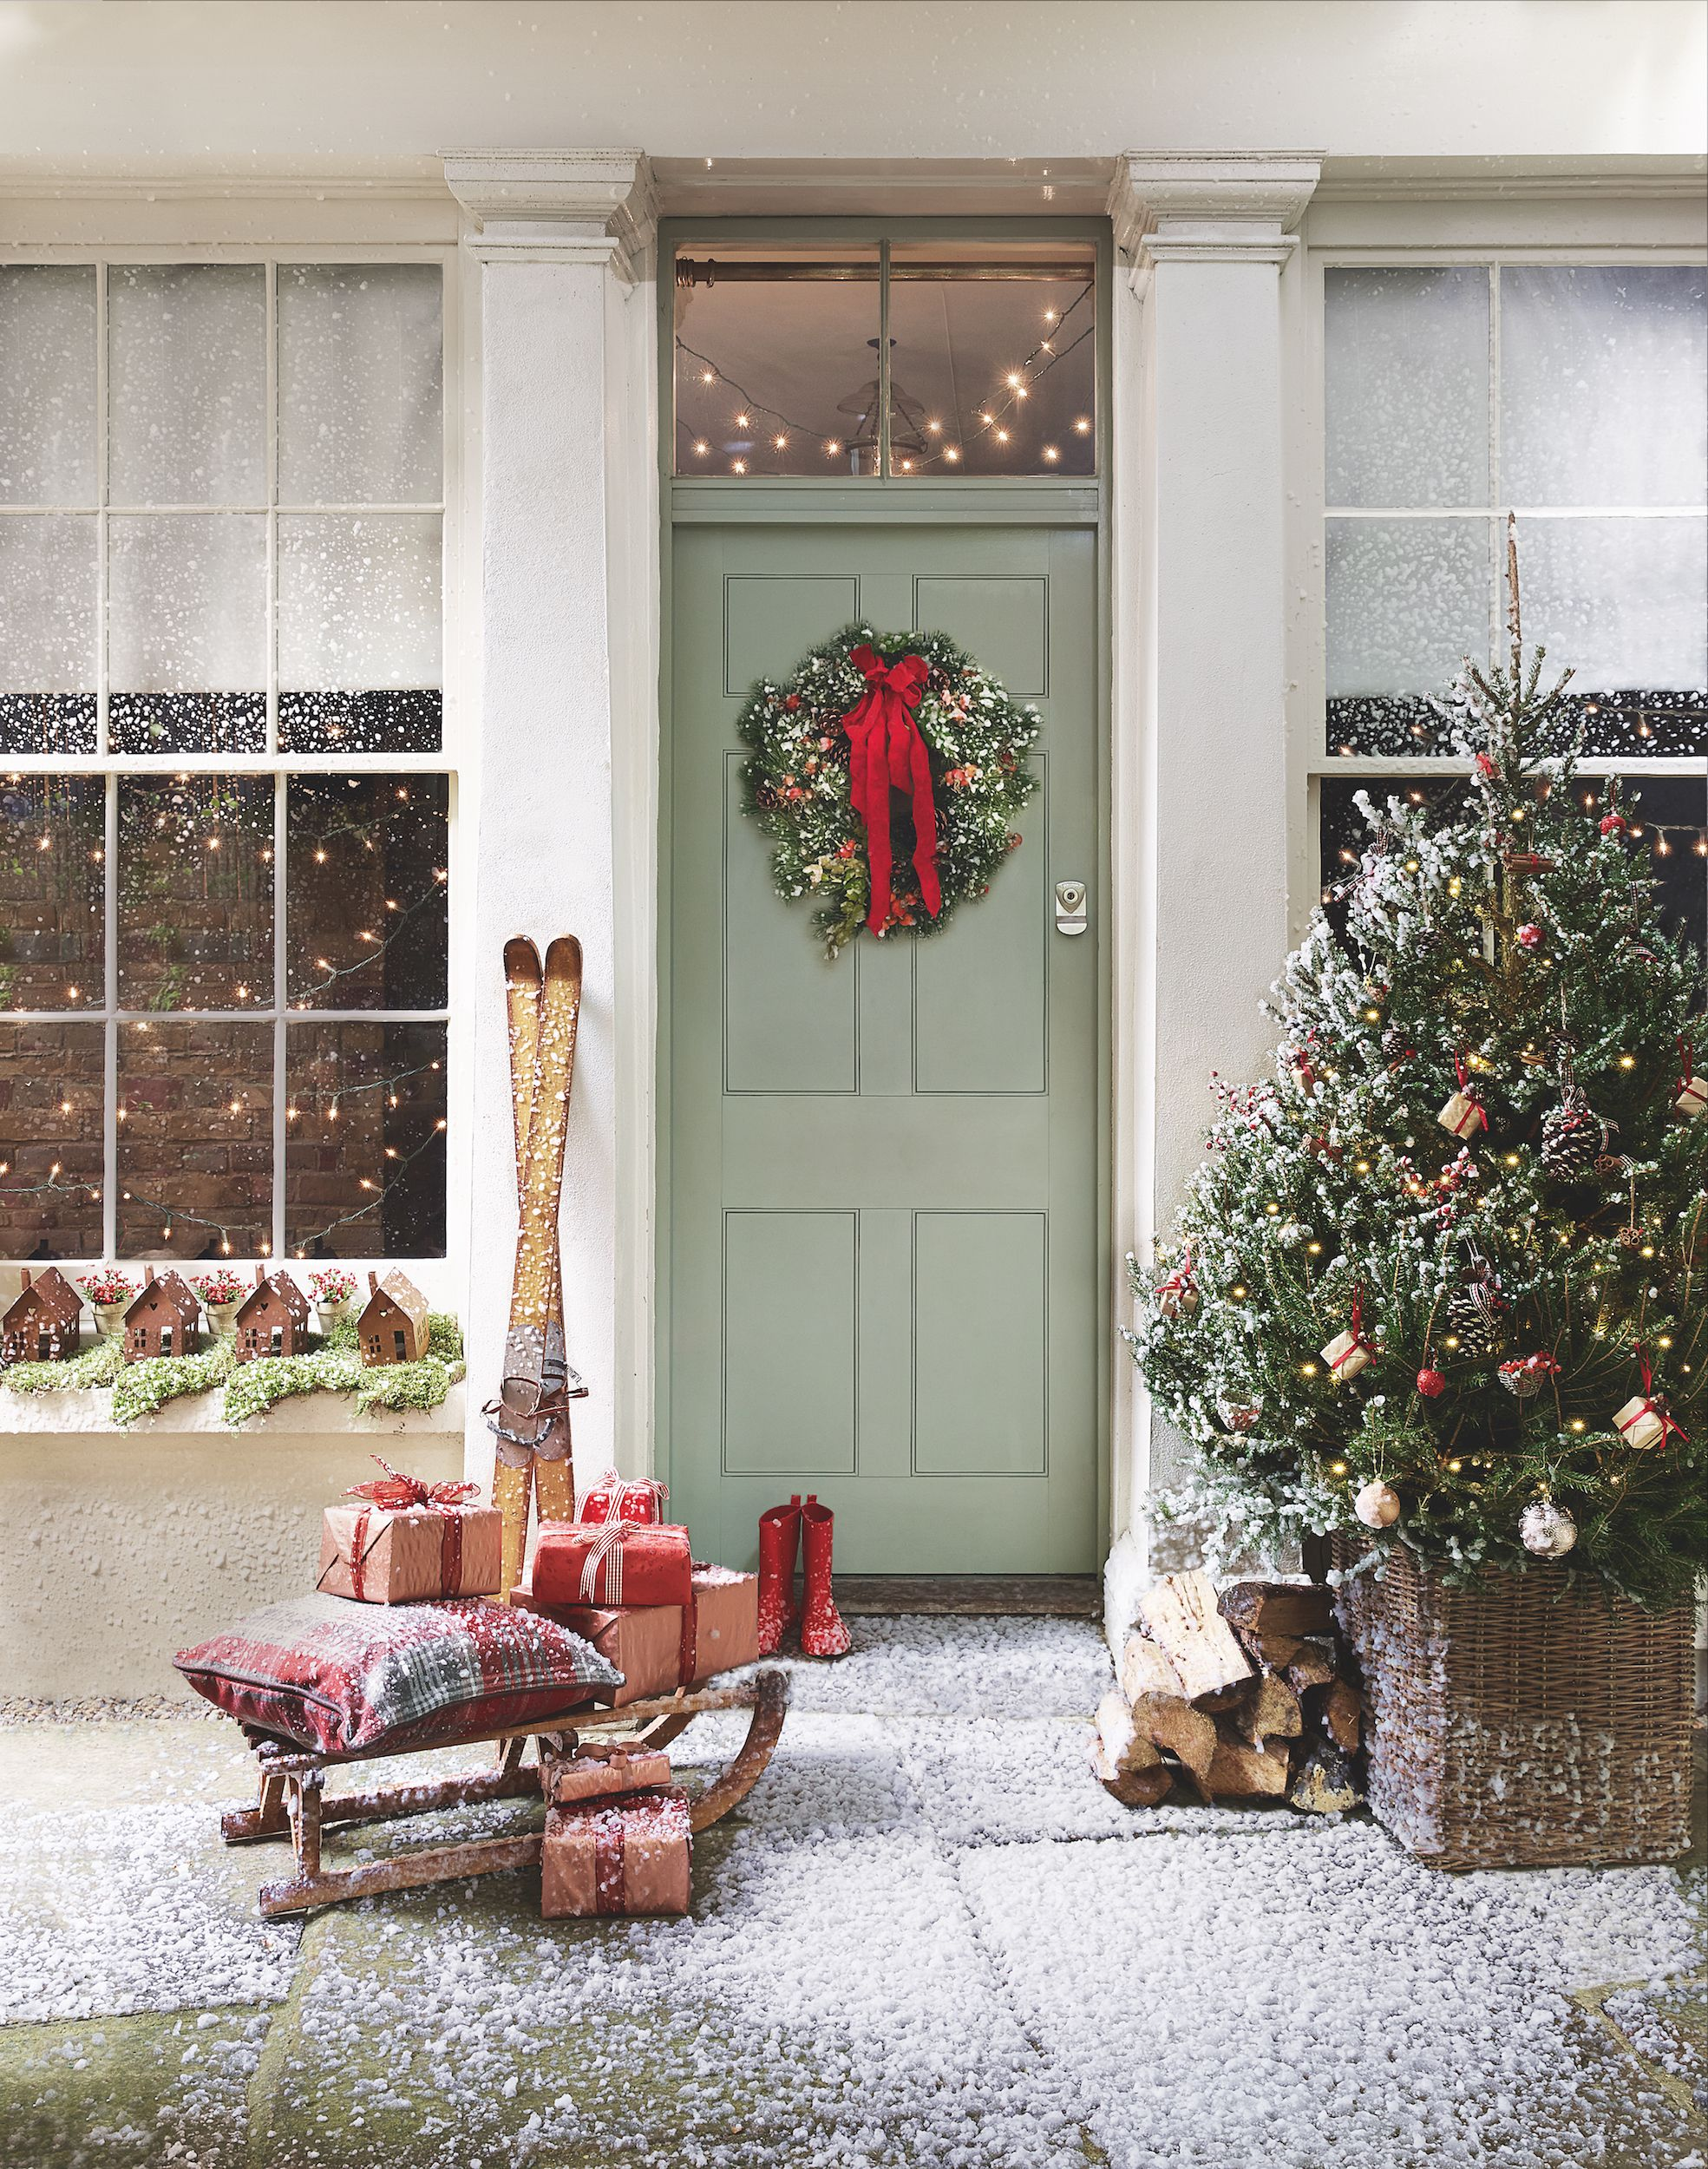 Christmas door decorations: how to decorate your front door for Christmas